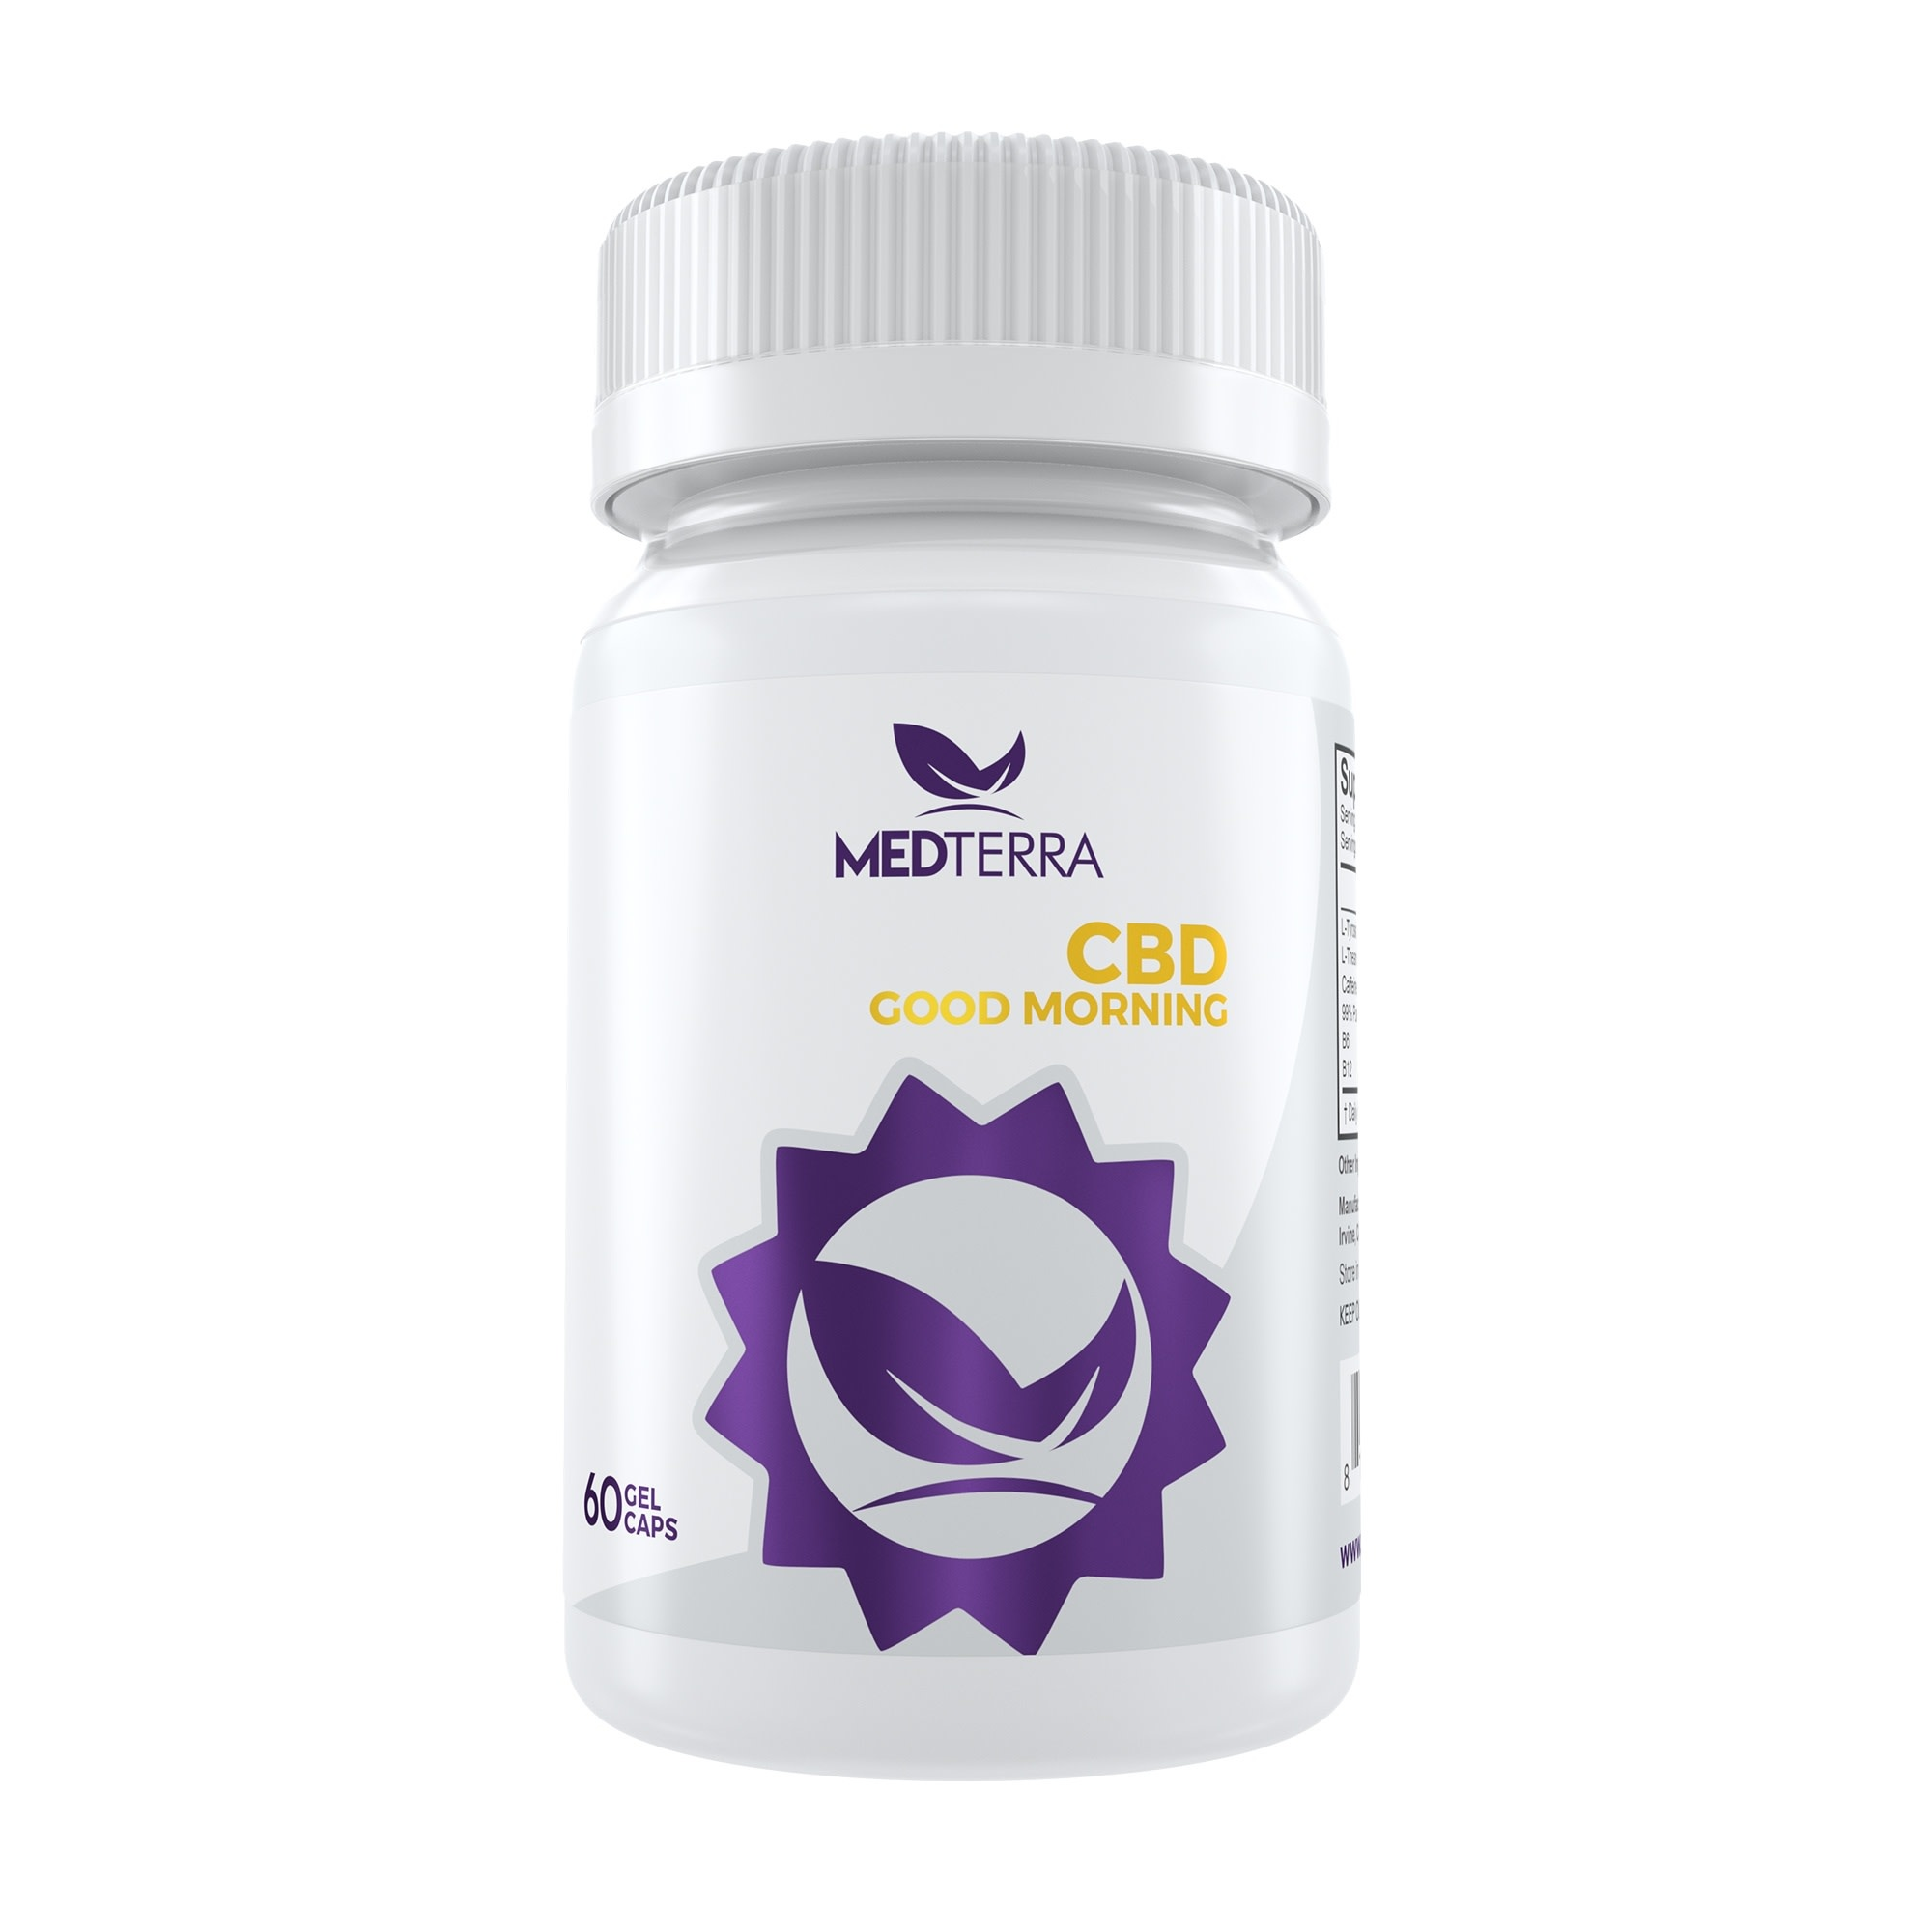 MedTerra CBD Good Morning